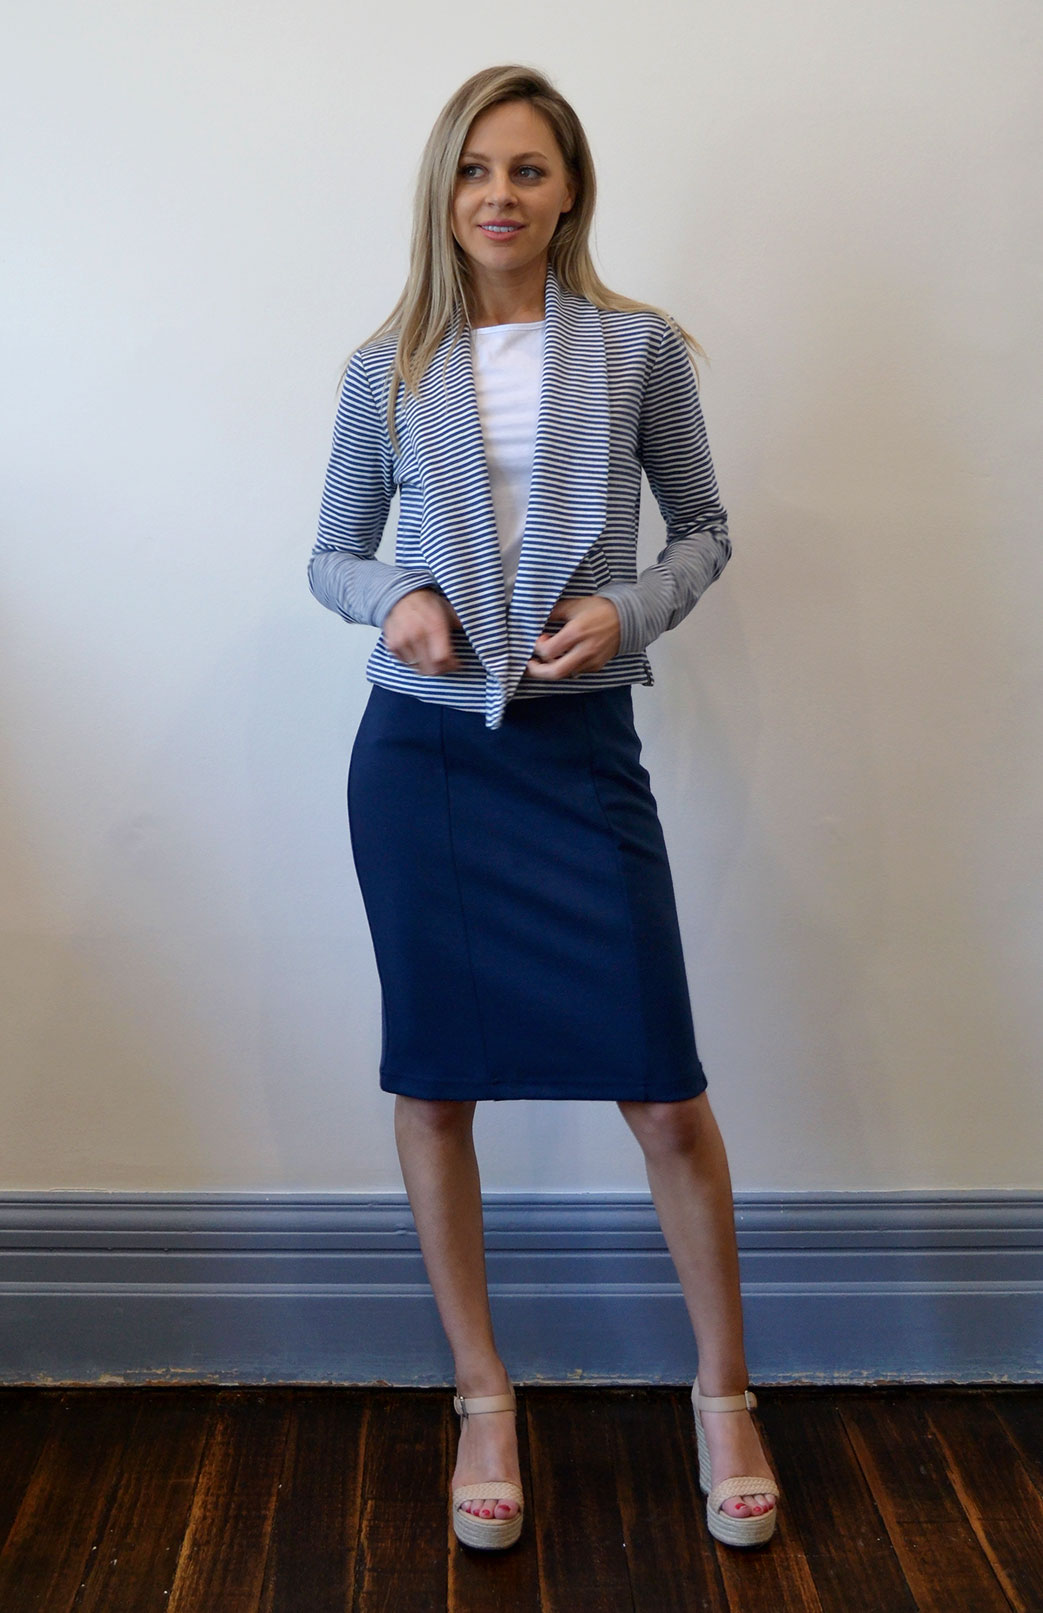 Straight Skirt - Women's Indigo Blue Wool Straight Skirt with front and side seams - Smitten Merino Tasmania Australia